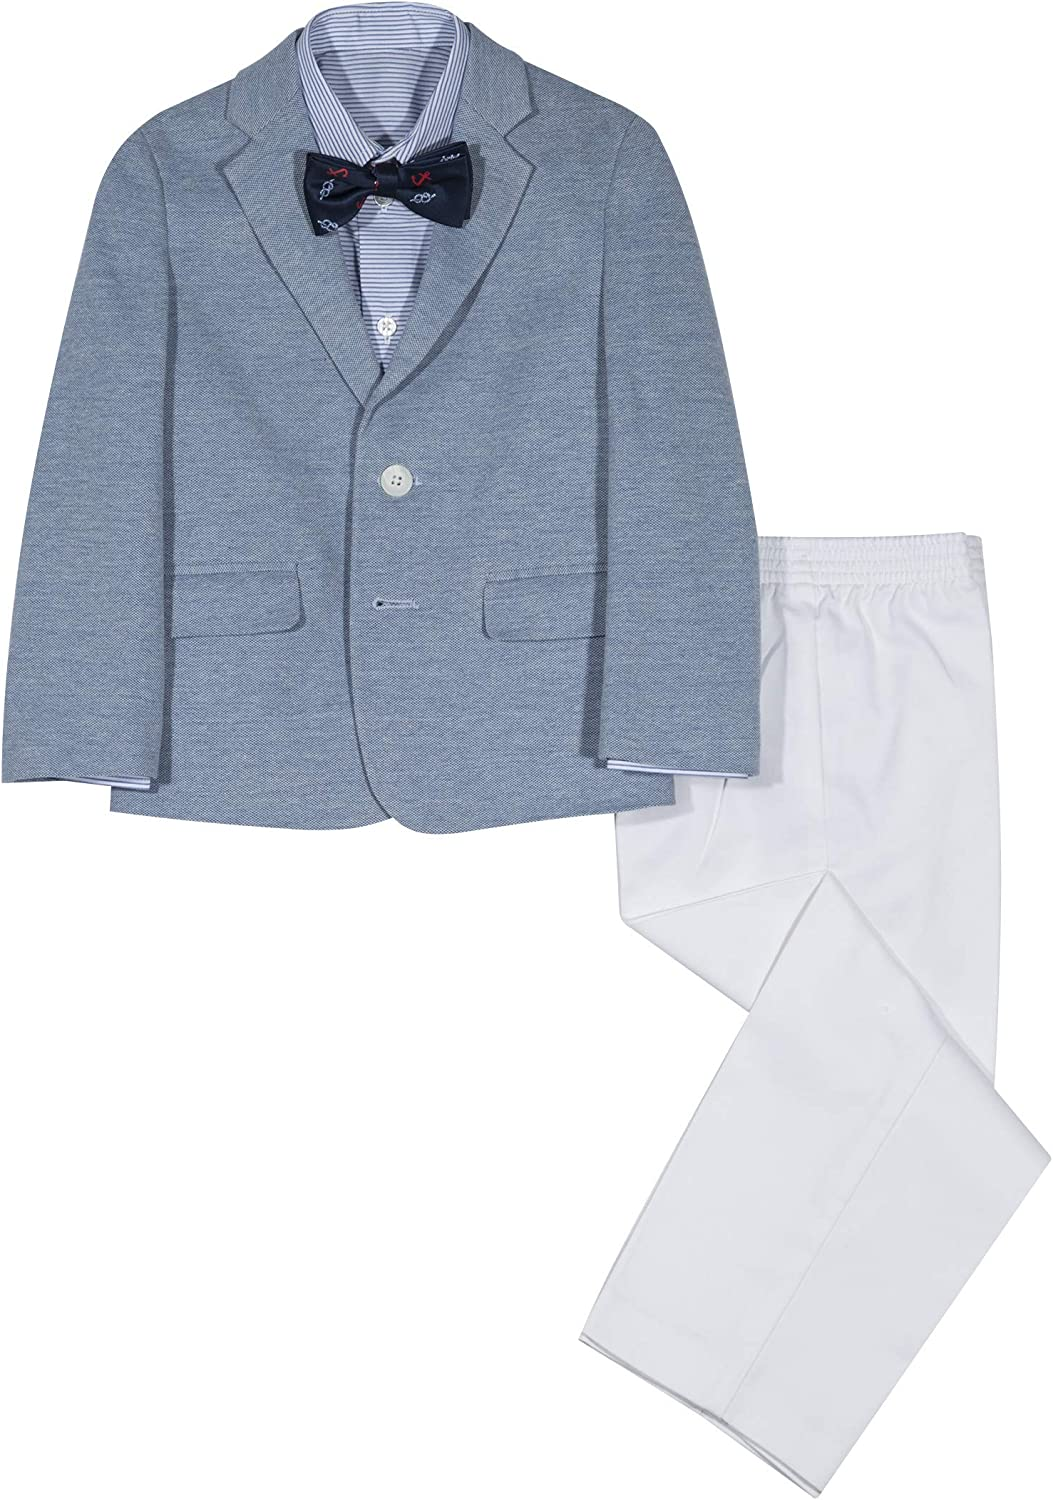 and Pants Nautica Boys 4-Piece Suit Set with Dress Shirt Jacket Bow Tie